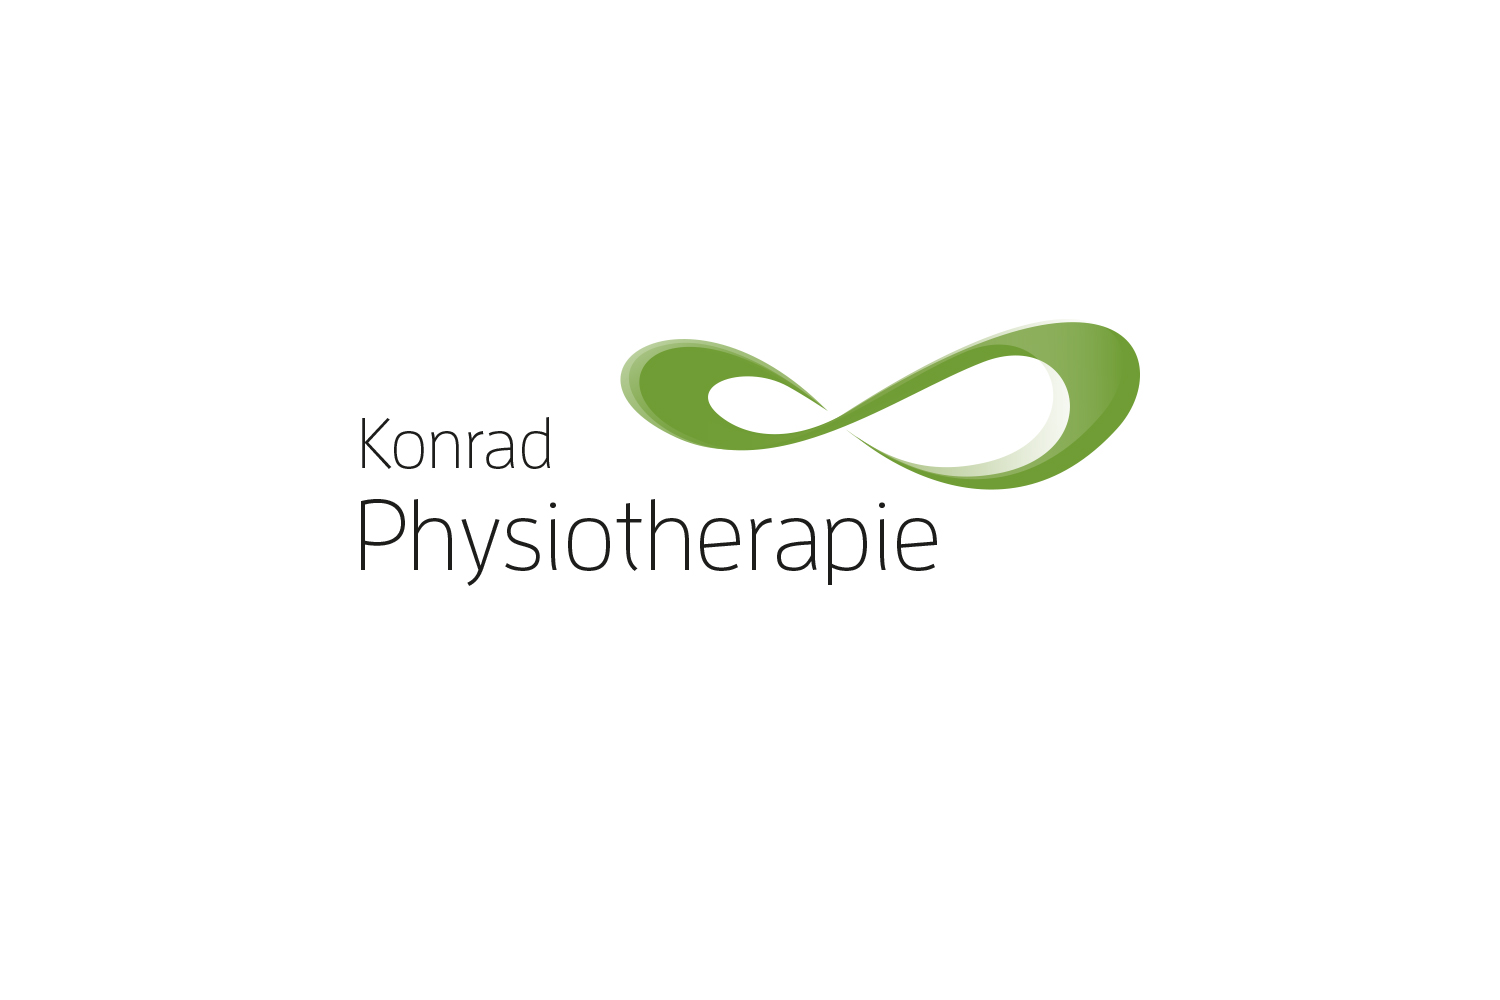 Konrad - Physiotherapie